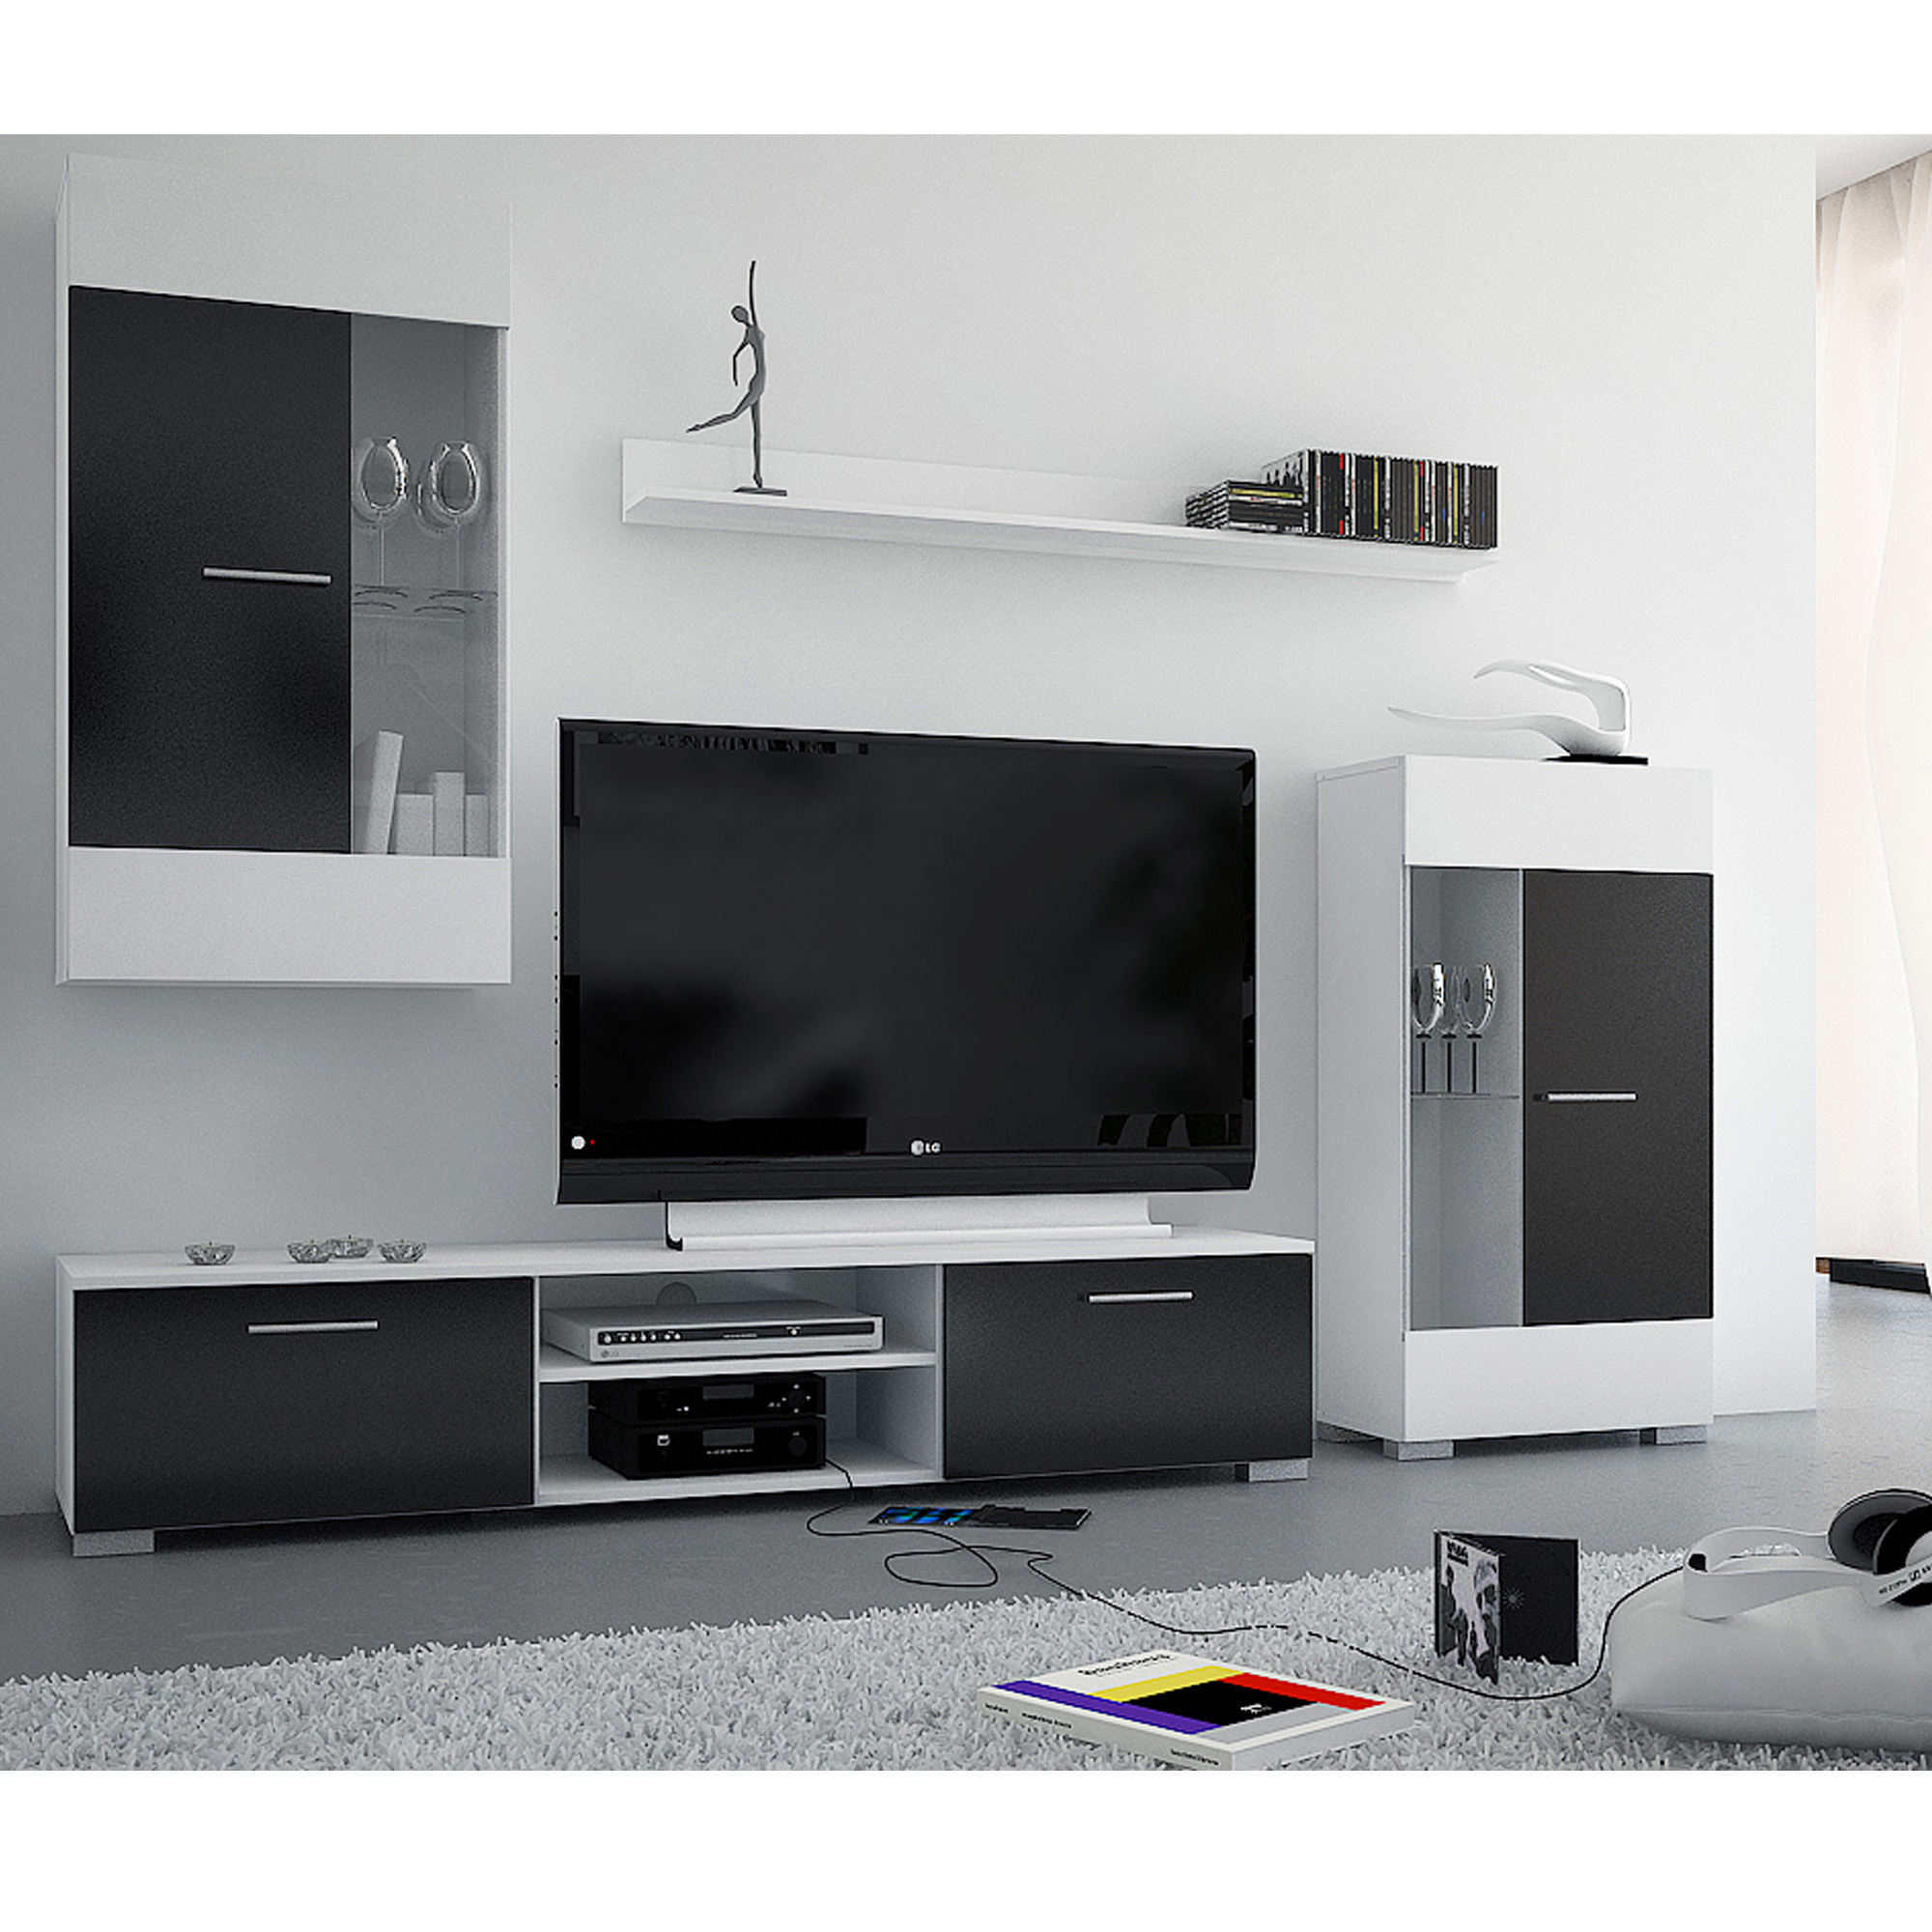 meuble tv la maison de valerie ensemble meuble tv bravo ventes pas. Black Bedroom Furniture Sets. Home Design Ideas